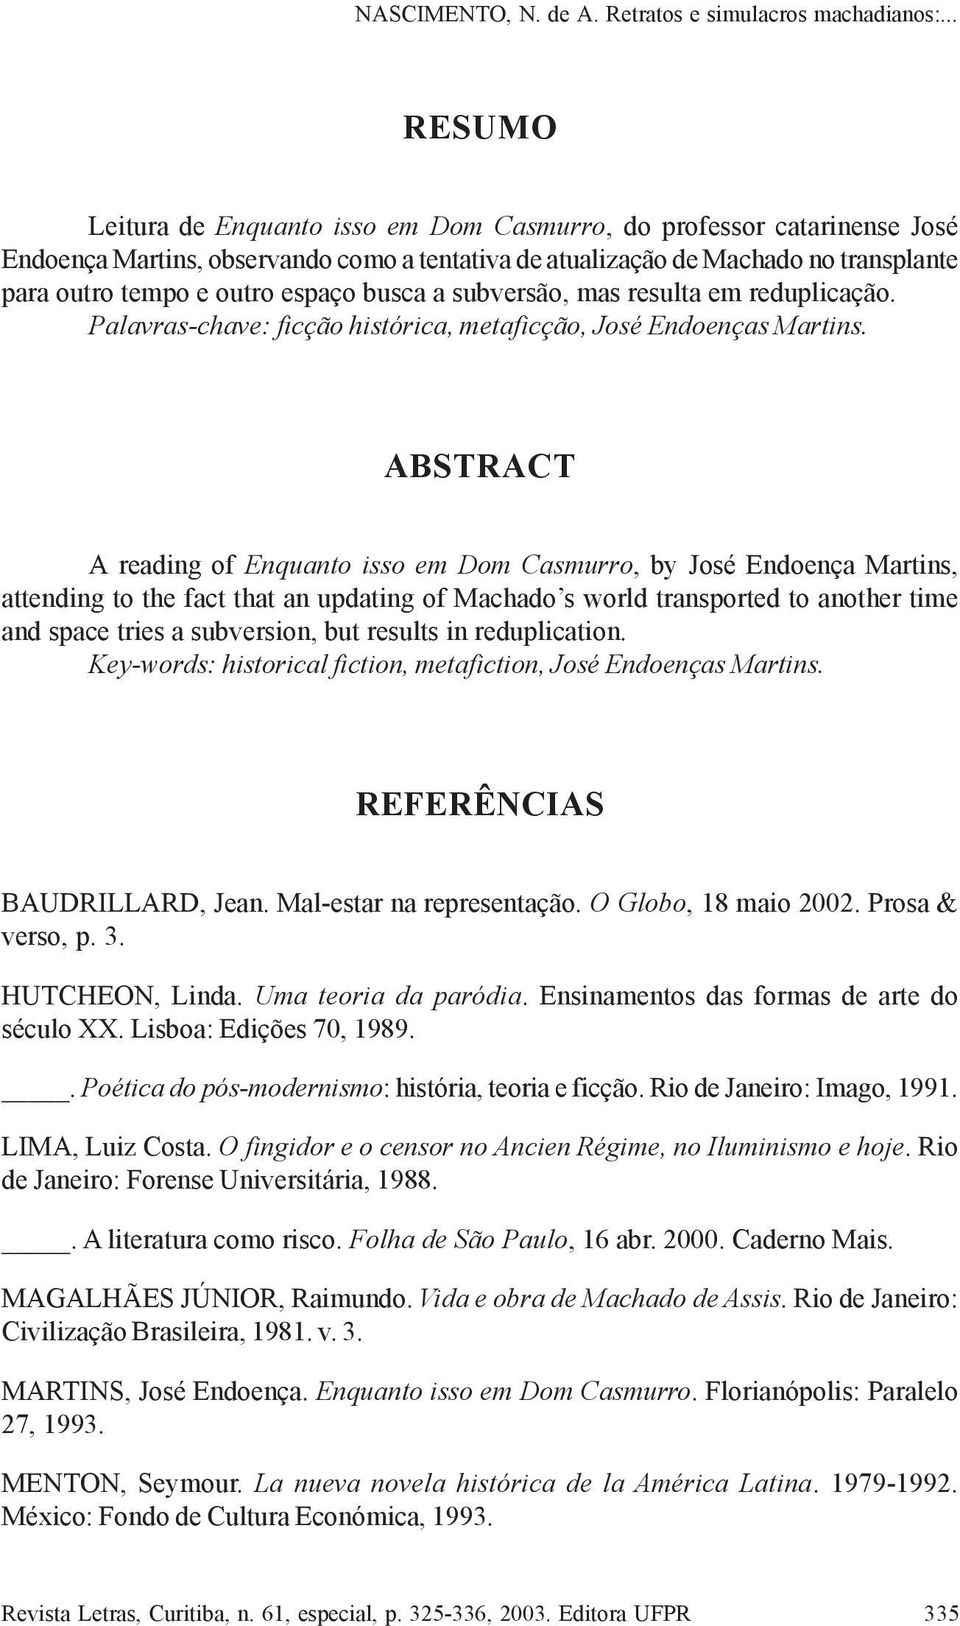 ABSTRACT A reading of Enquanto isso em Dom Casmurro, by José Endoença Martins, attending to the fact that an updating of Machado s world transported to another time and space tries a subversion, but